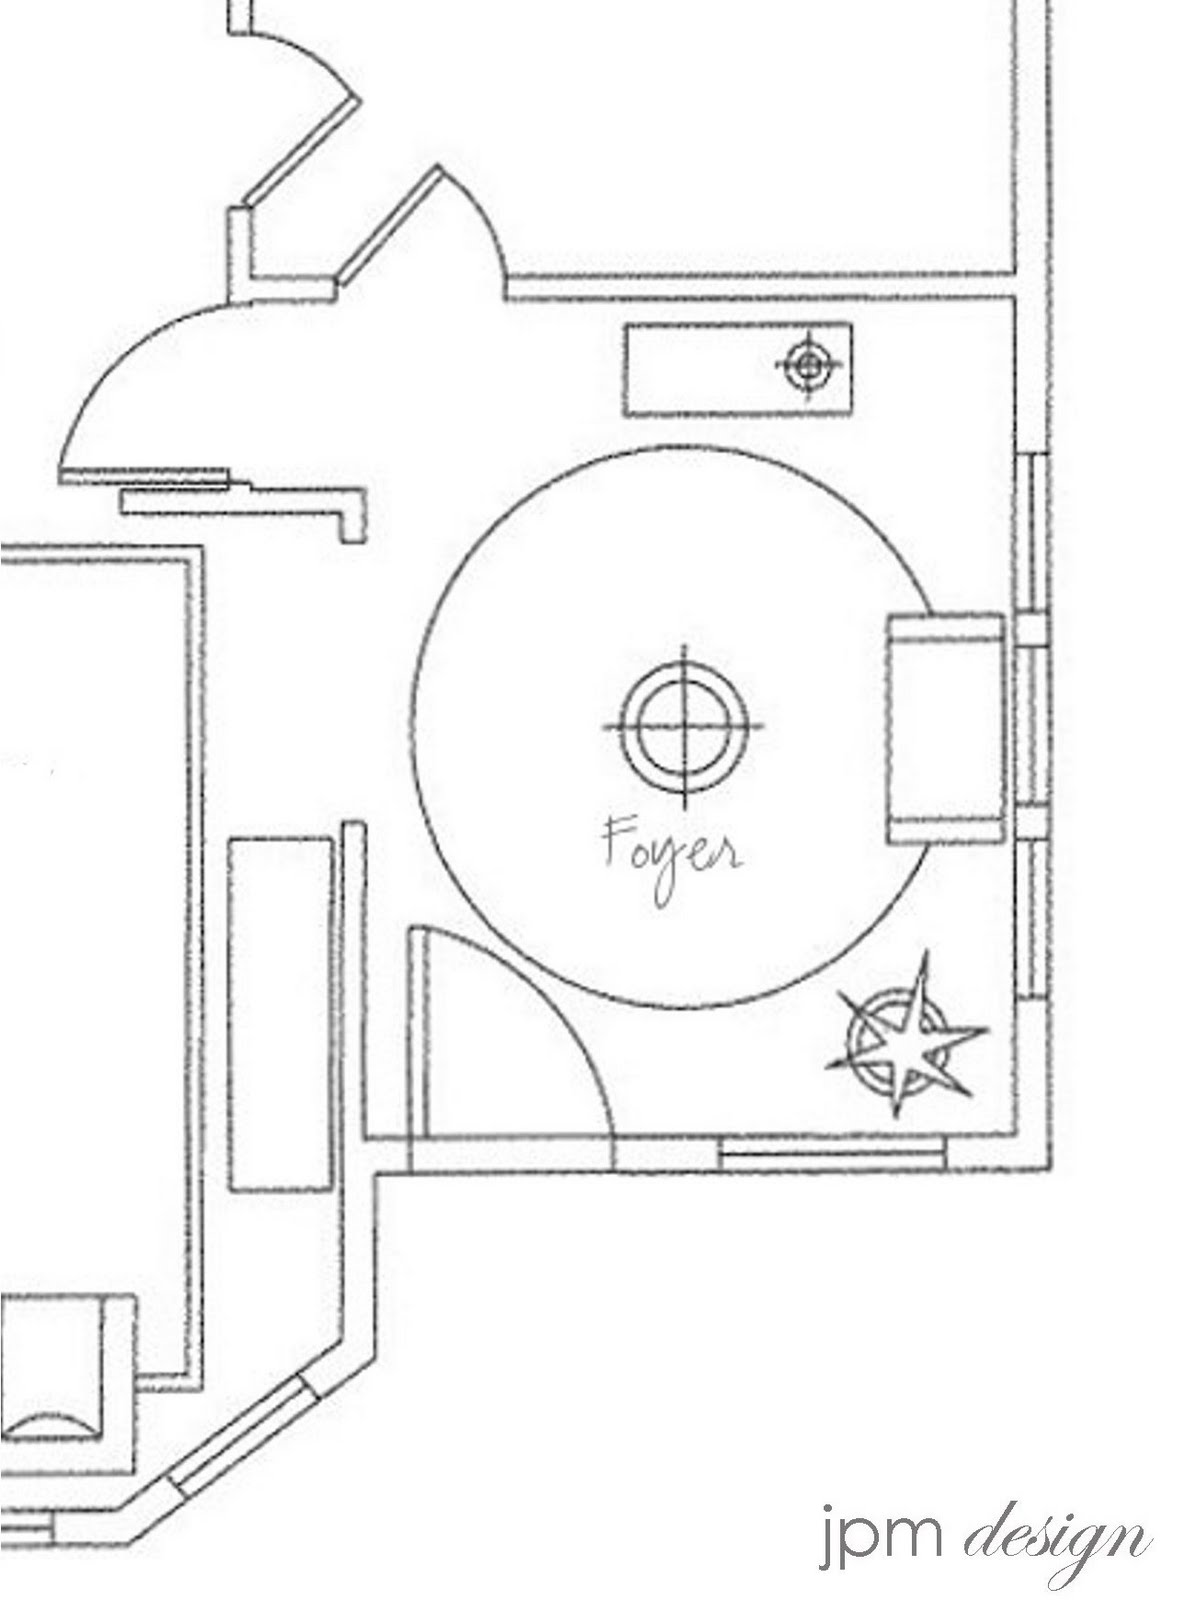 Foyer Plan : Jpm design project update